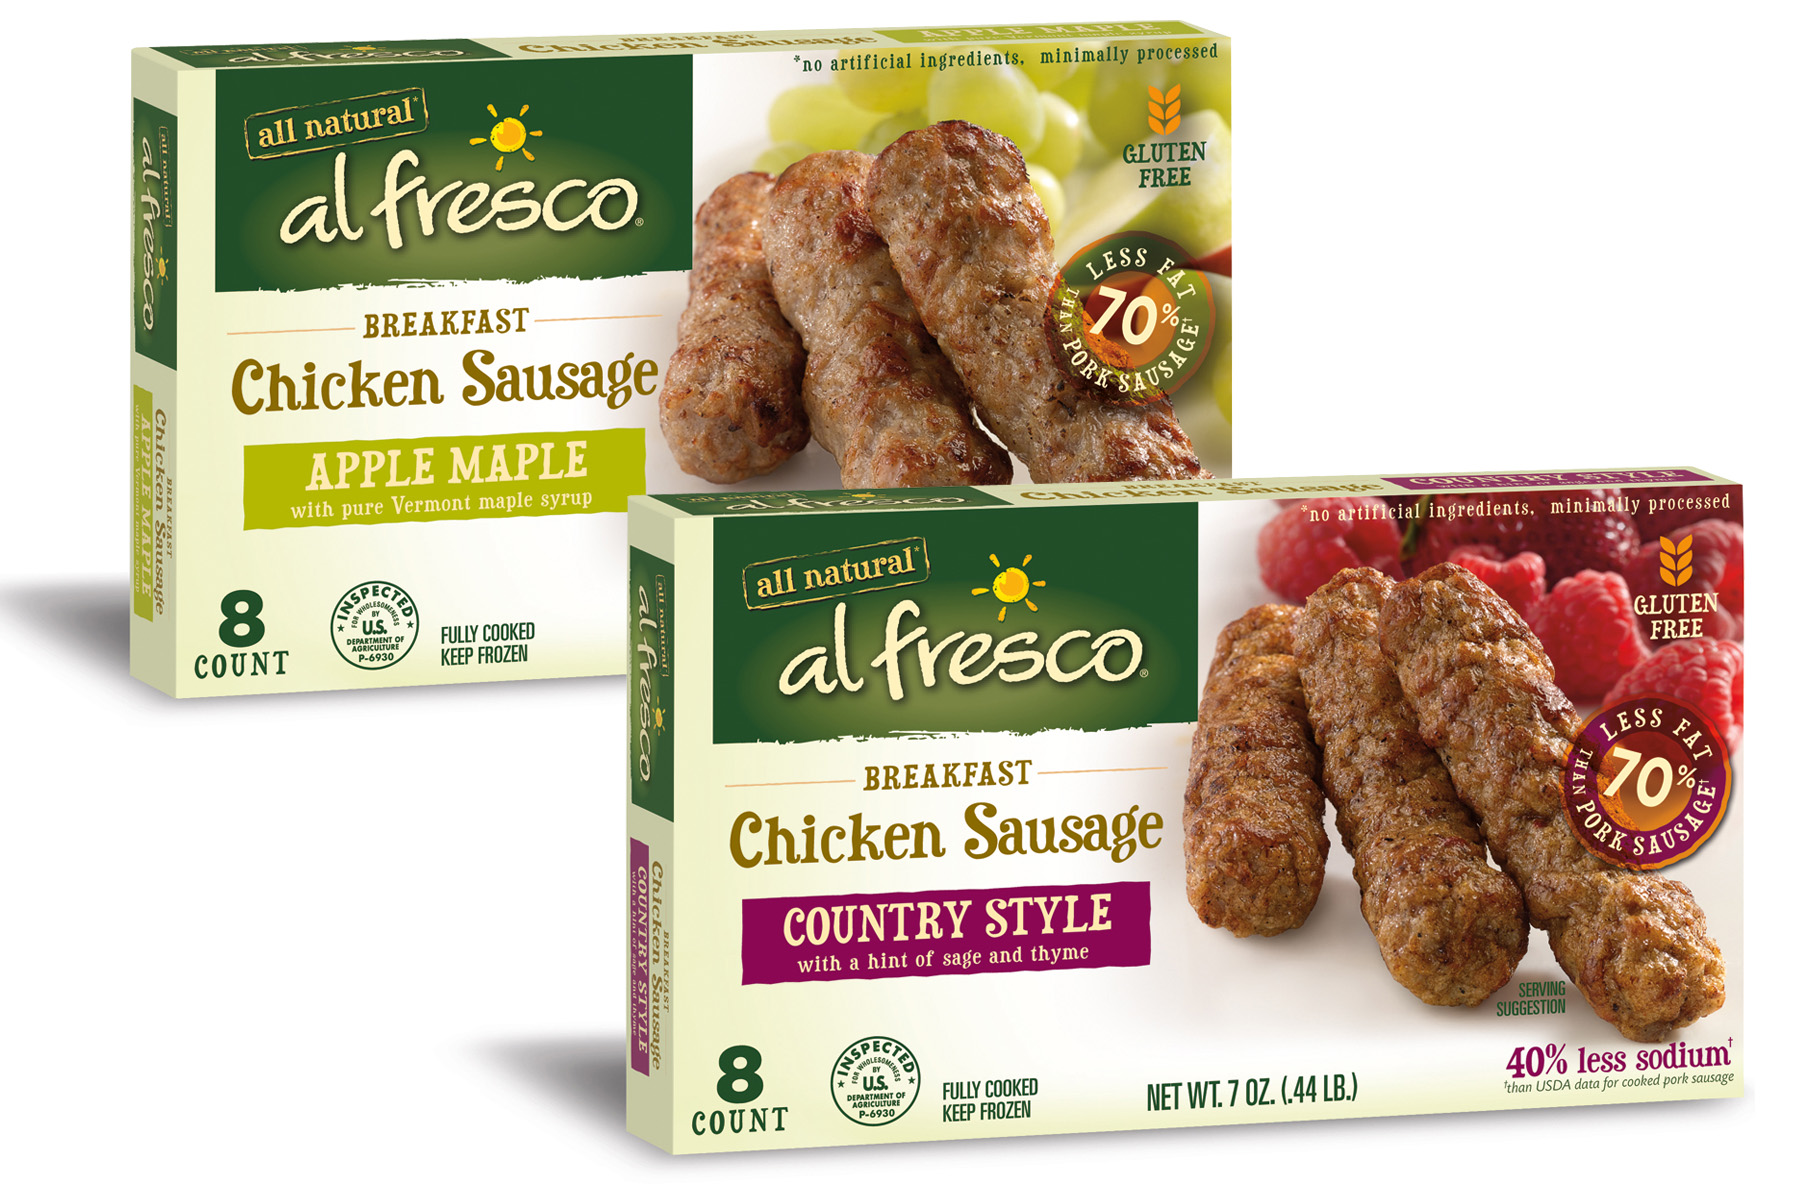 Al Fresco Sausage Packaging